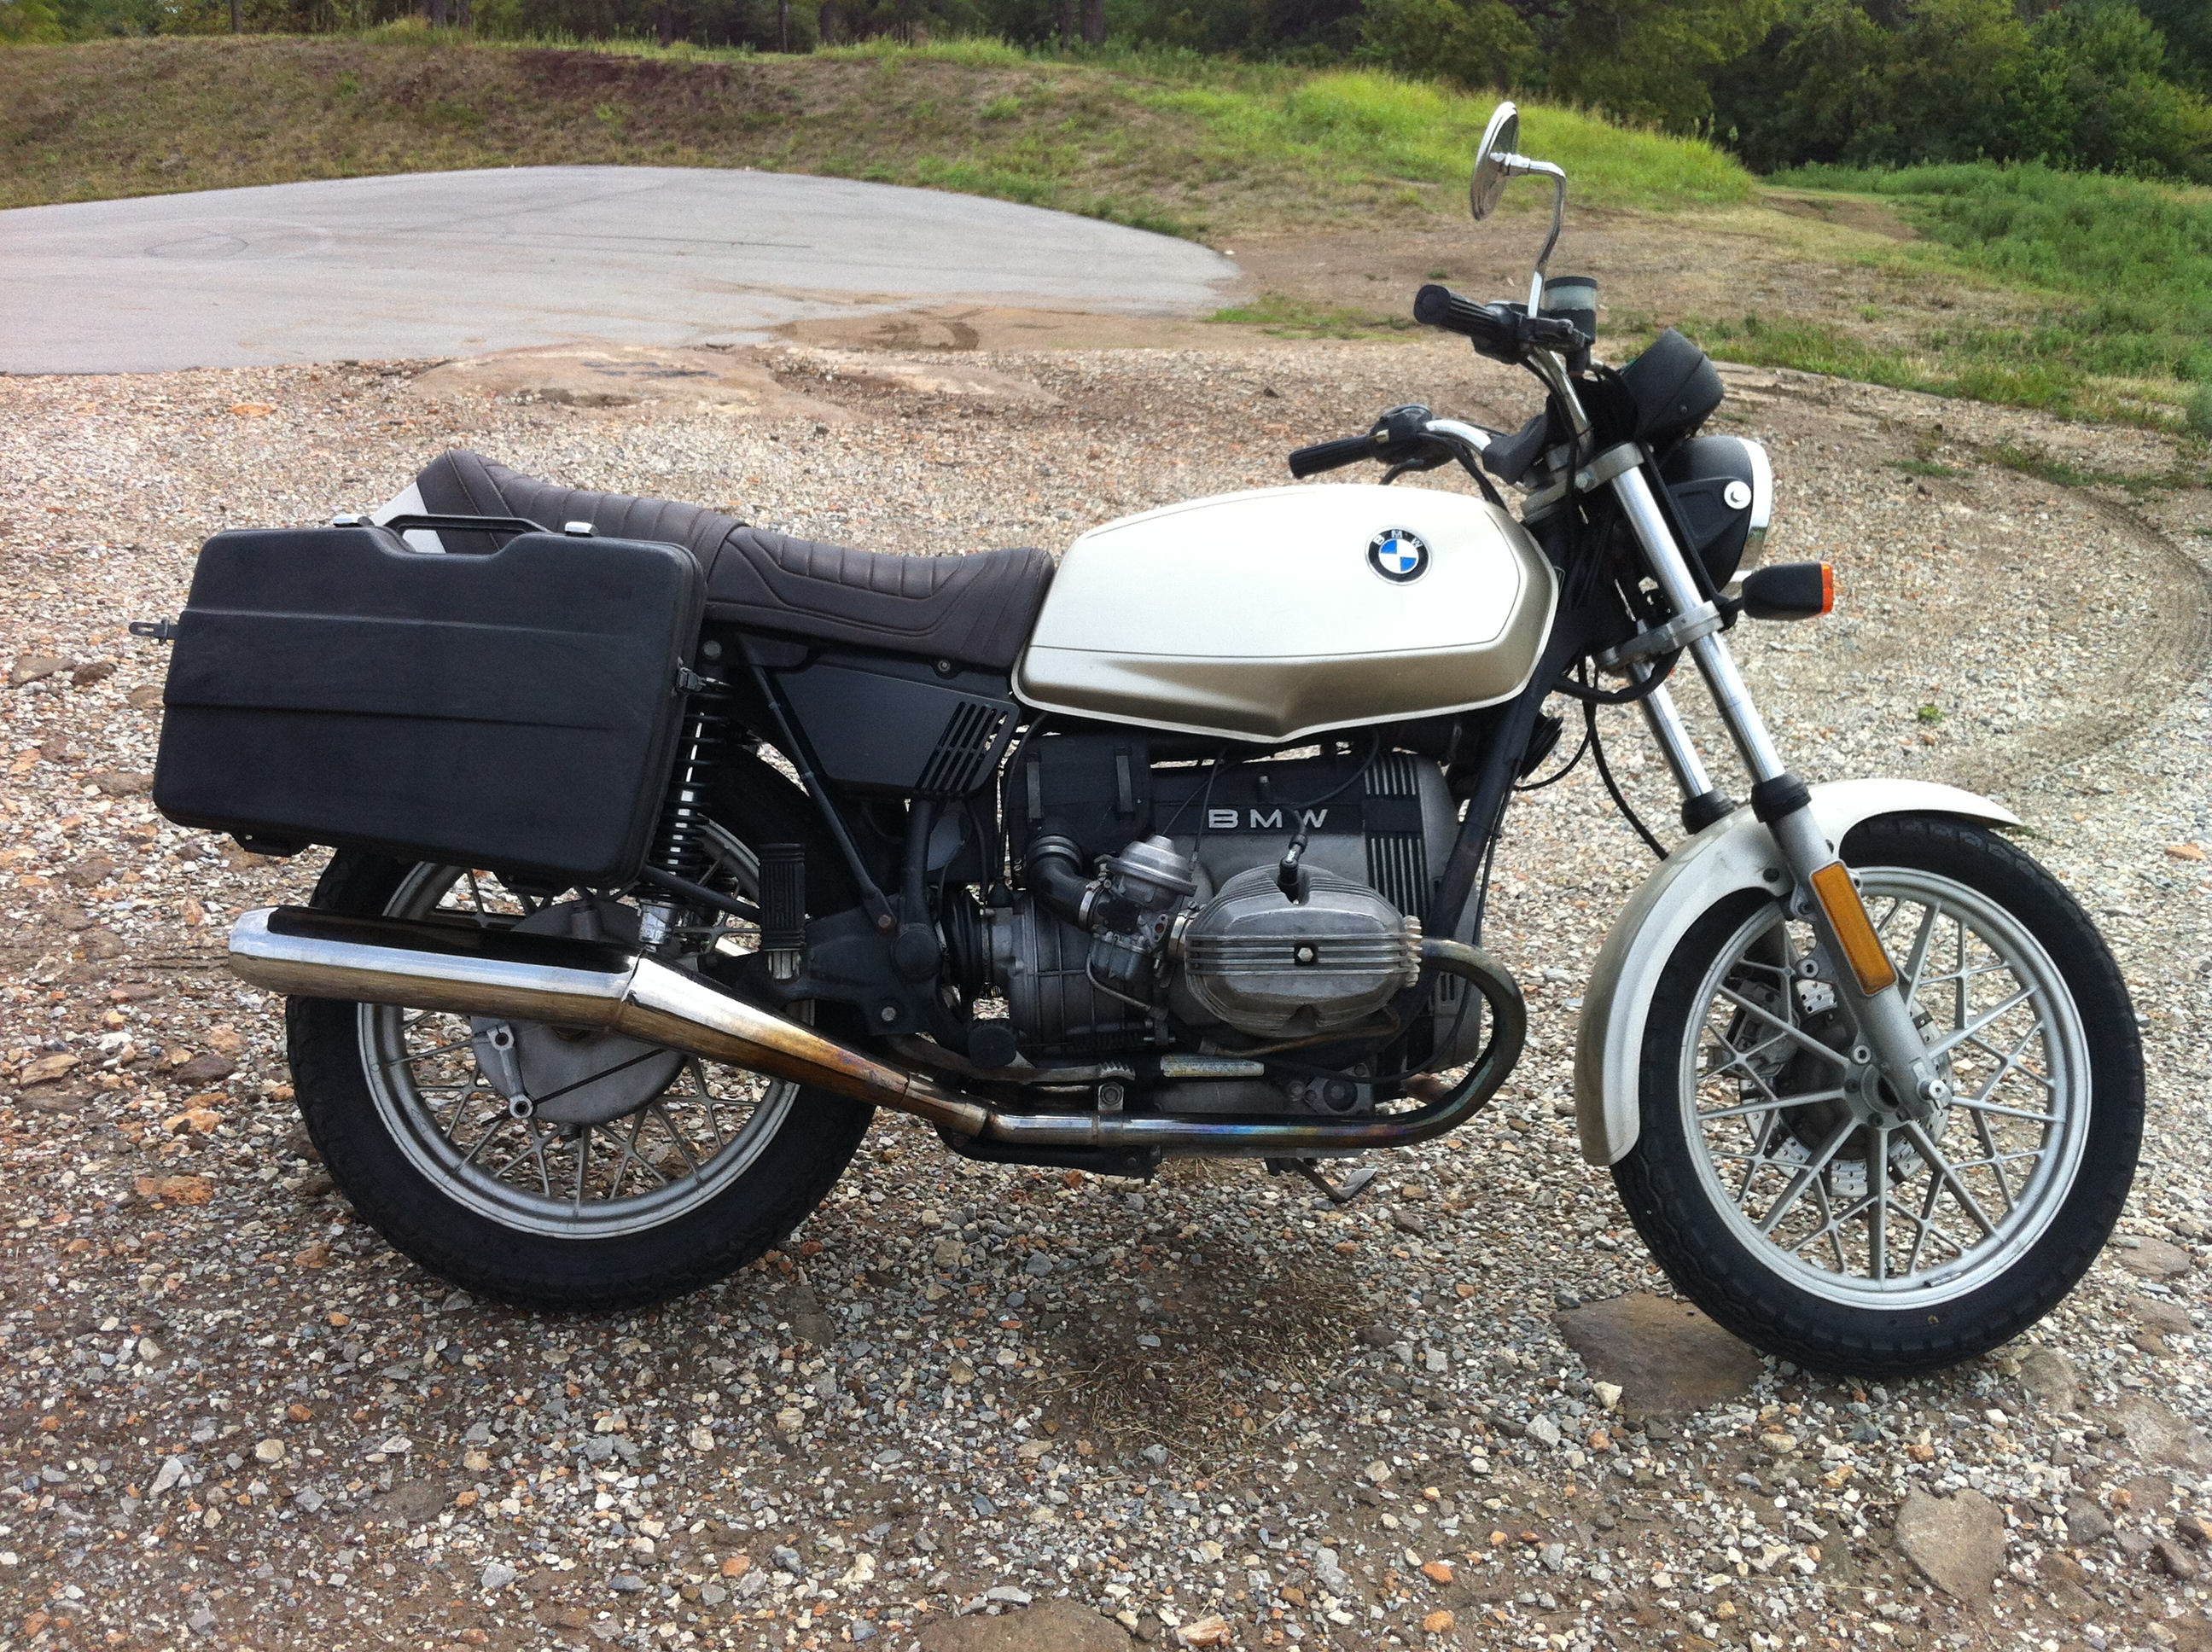 1980 BMW R45 (reduced effect) #5